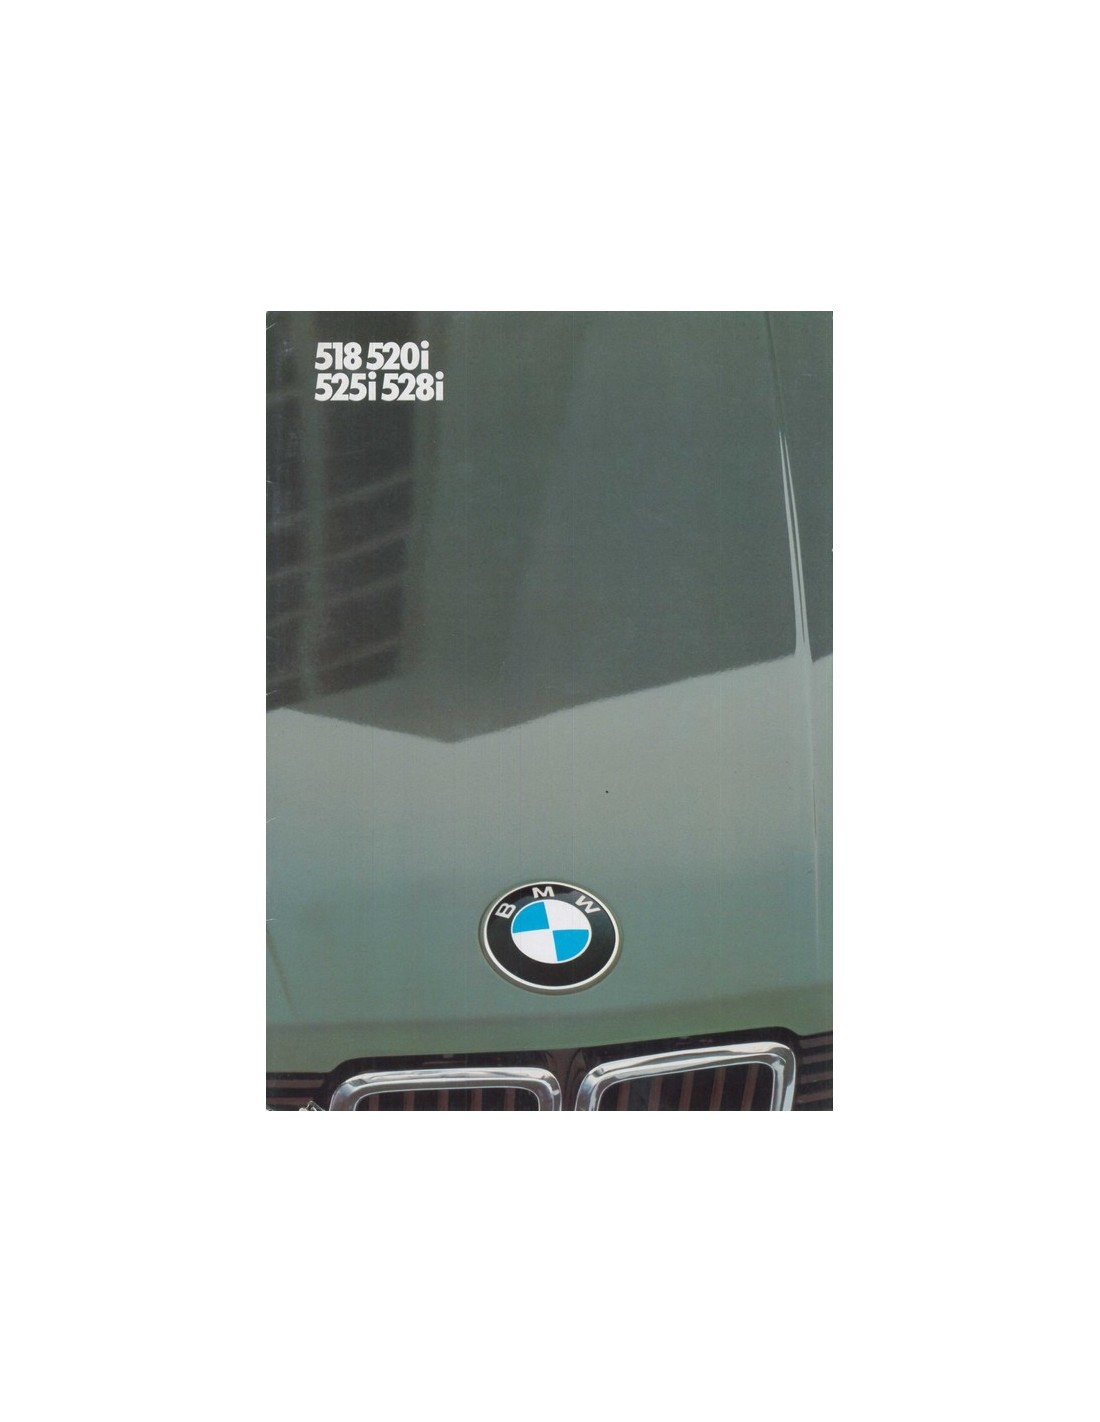 1983 Bmw 5 Series Brochure German